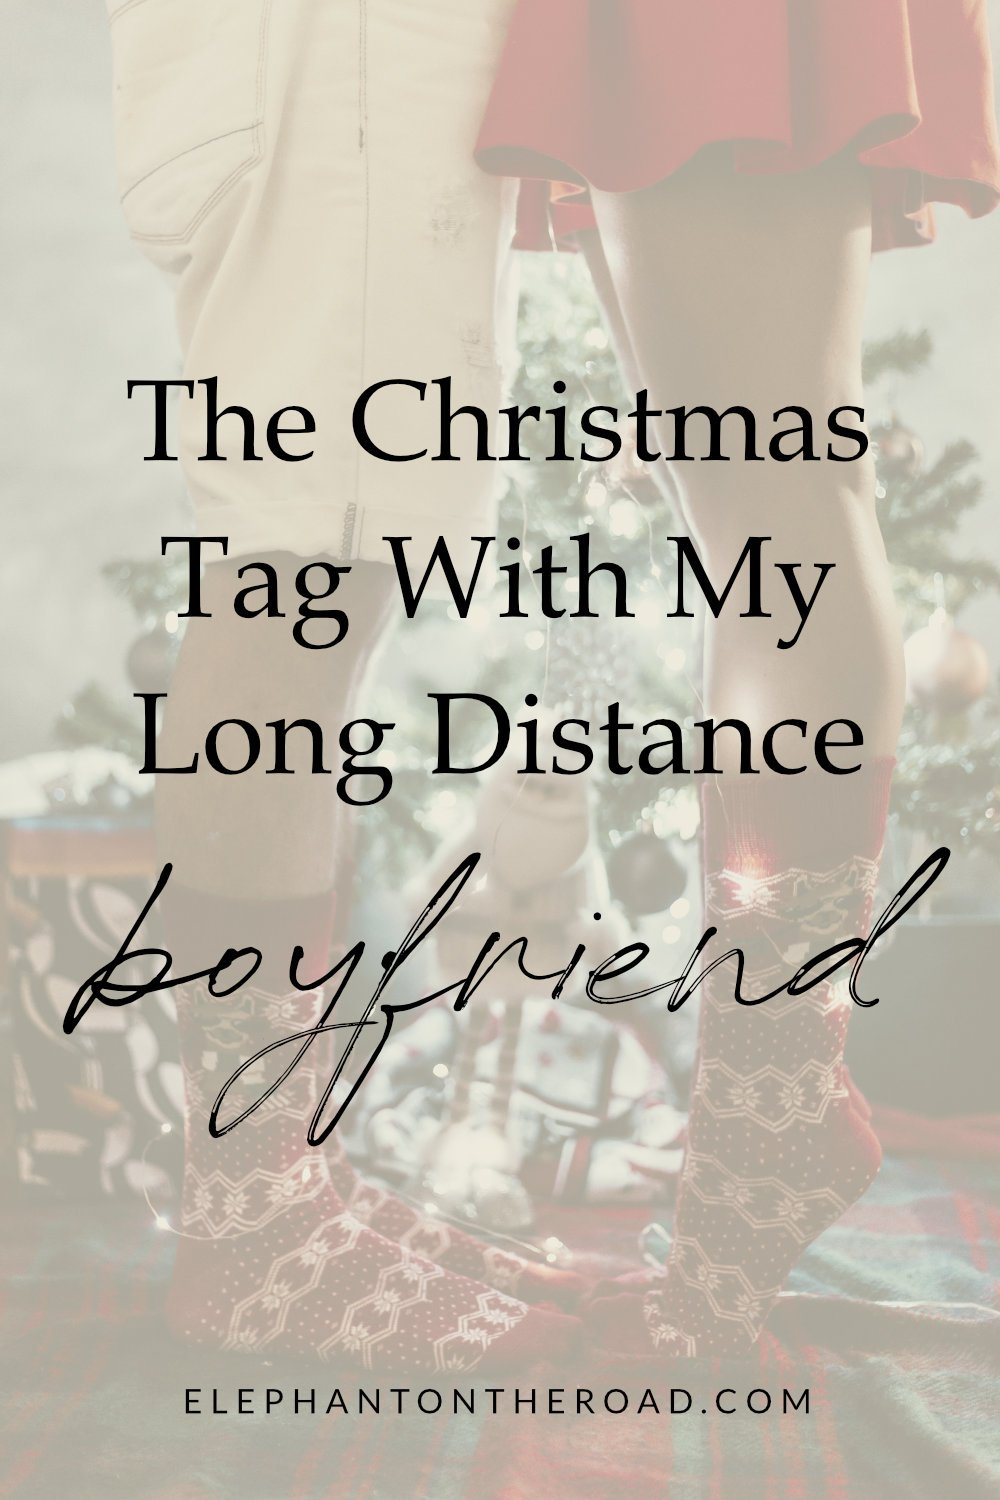 The Christmas Tag With My Long Distance Boyfriend. Long Distance Relationship Tips. Longs distance relationship Advice. Questions About Long Distance Relationship. Long Distance Relationship. LDR. Long Distance Relationship Couple. Christmas for Long Distance Relationships. Holidays with Long Distance Relationships. Elephant on the Road.